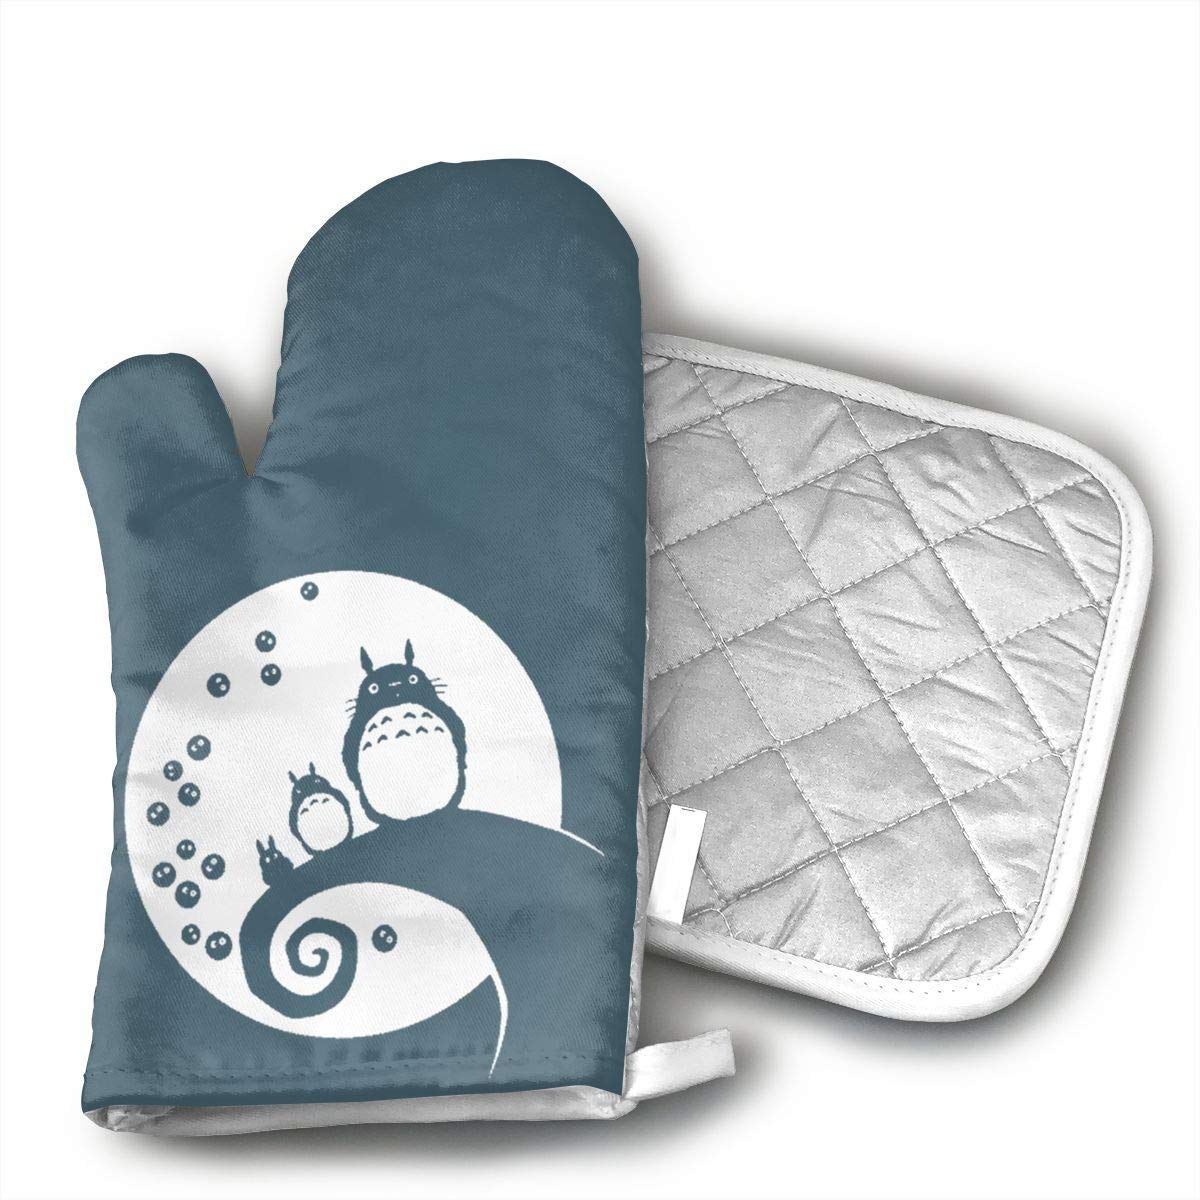 ECEED DAI Anime My Neighbor Oven Mitts,with Potholders Oven Gloves,Insulated Quilted Cotton Potholders